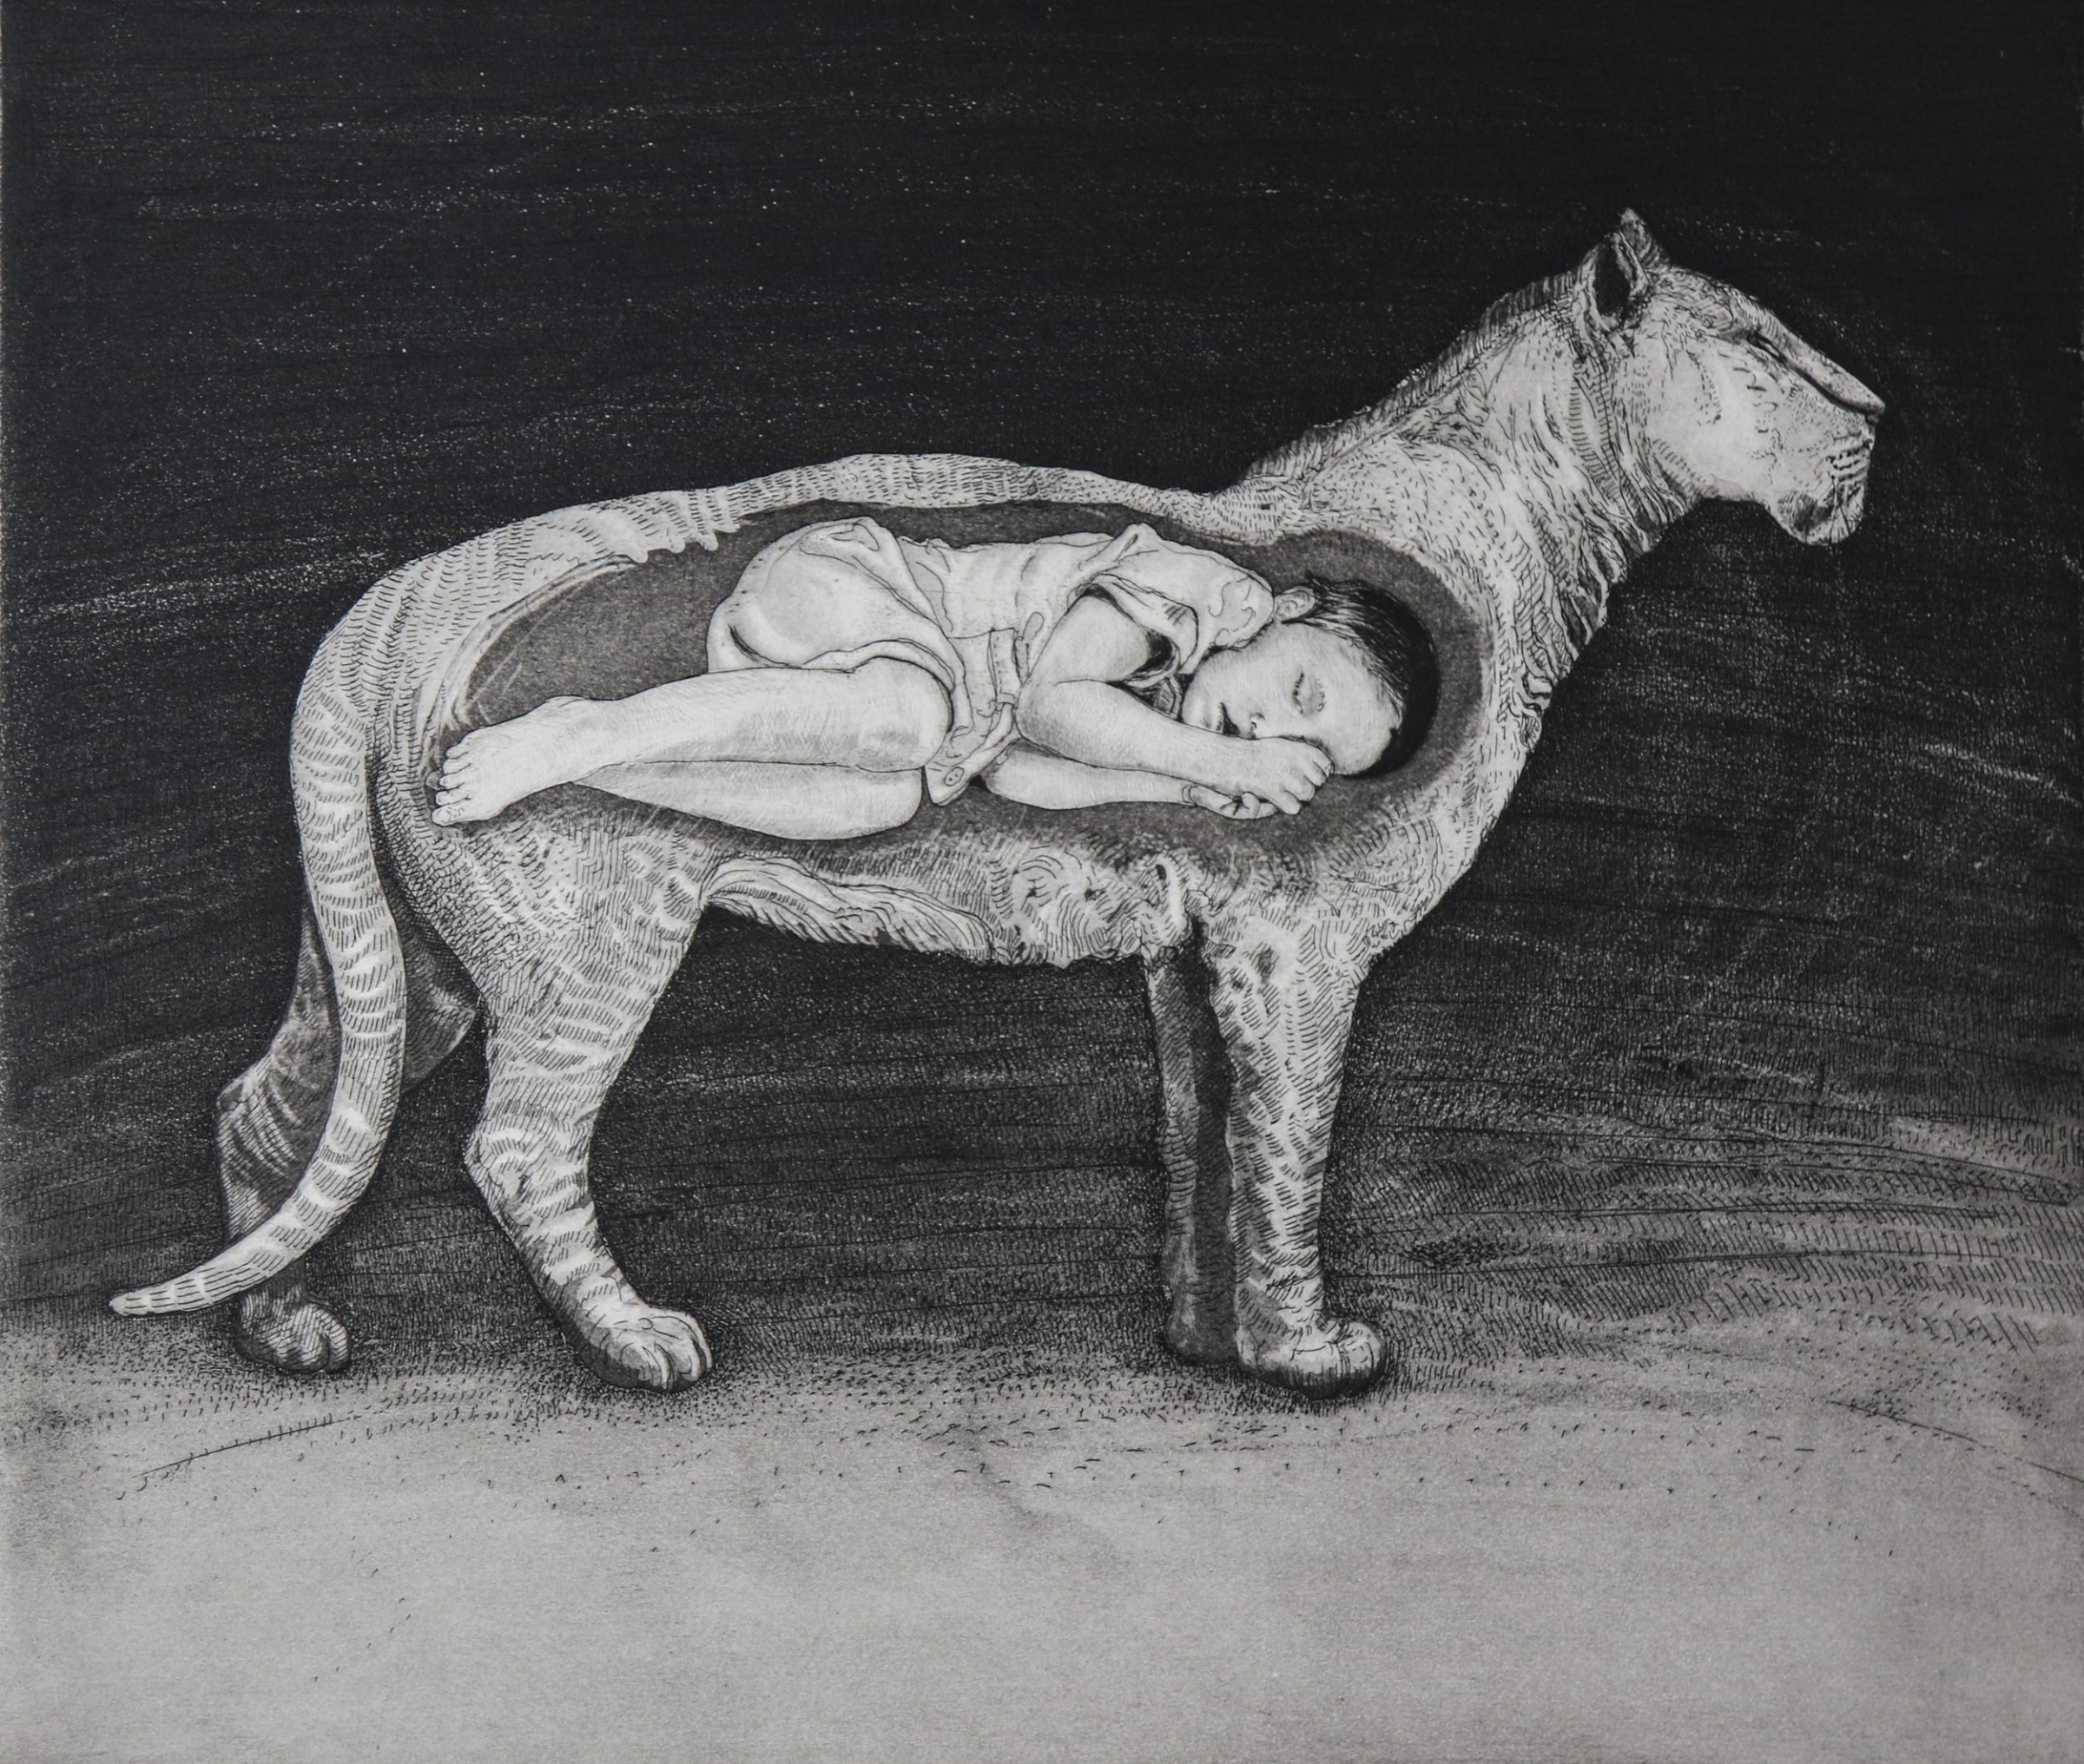 "<span class=""link fancybox-details-link""><a href=""/exhibitions/17/works/image_standalone732/"">View Detail Page</a></span><p><strong>Tammy Mackay</strong></p><p>Lion</p><p>etching and drypoint, ed of 15</p><p>52 x 55cm</p><p>£345 framed</p><p>£245 unframed</p>"